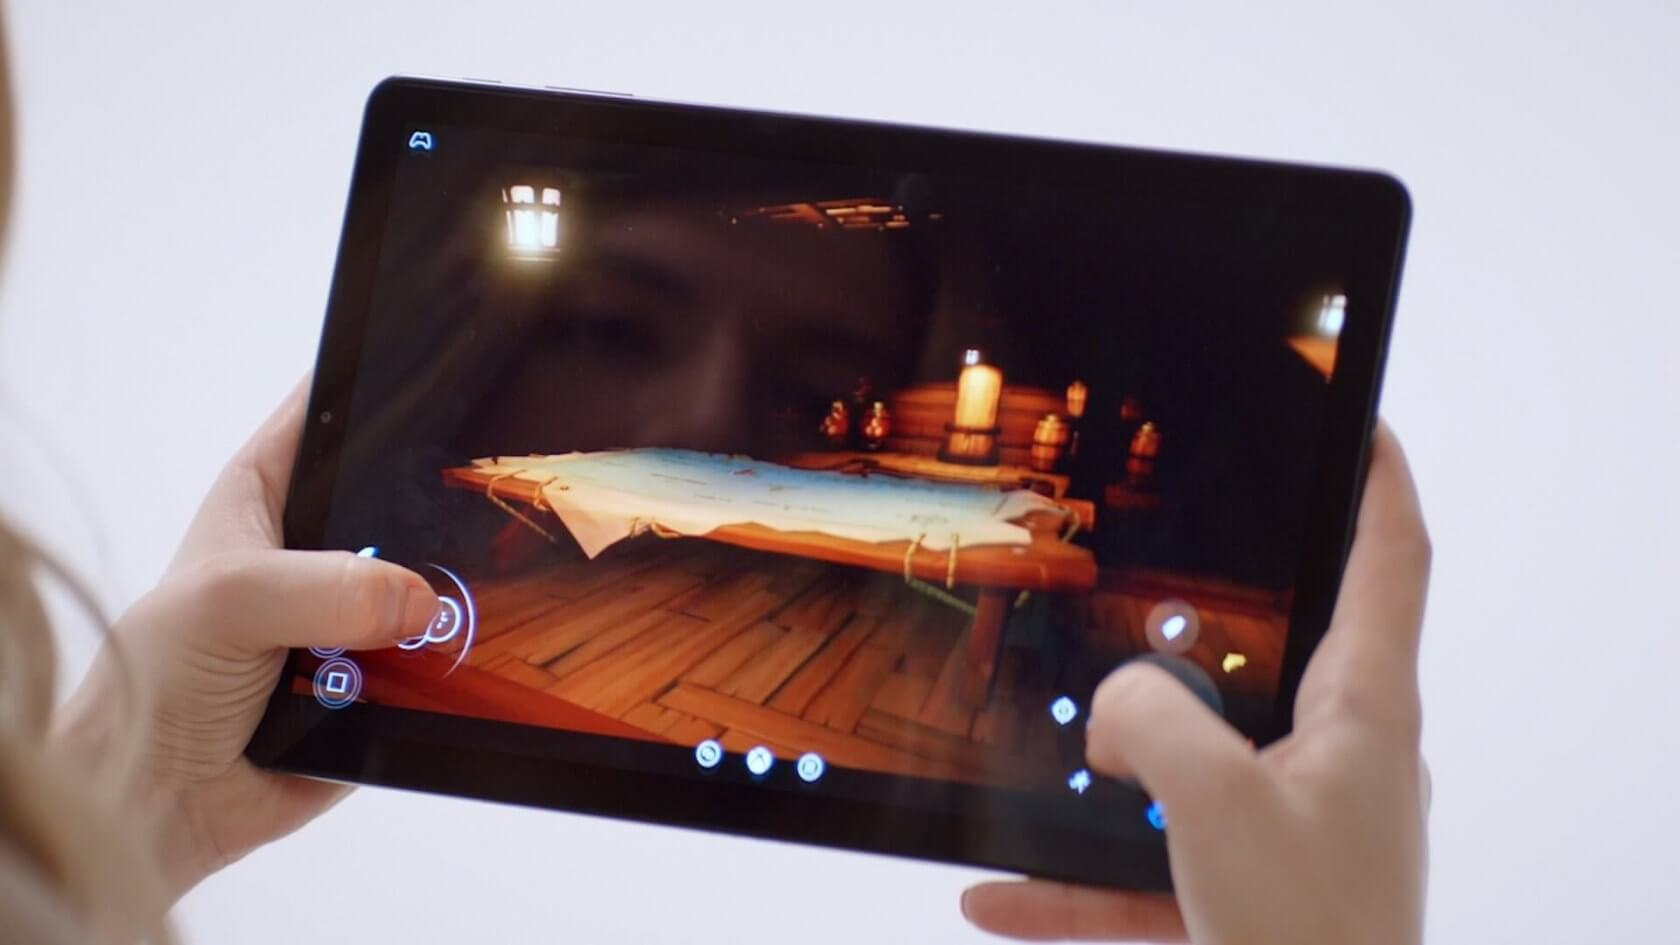 Project xCloud Is Already Compatible With 3,500 Xbox Games, Confirms Microsoft